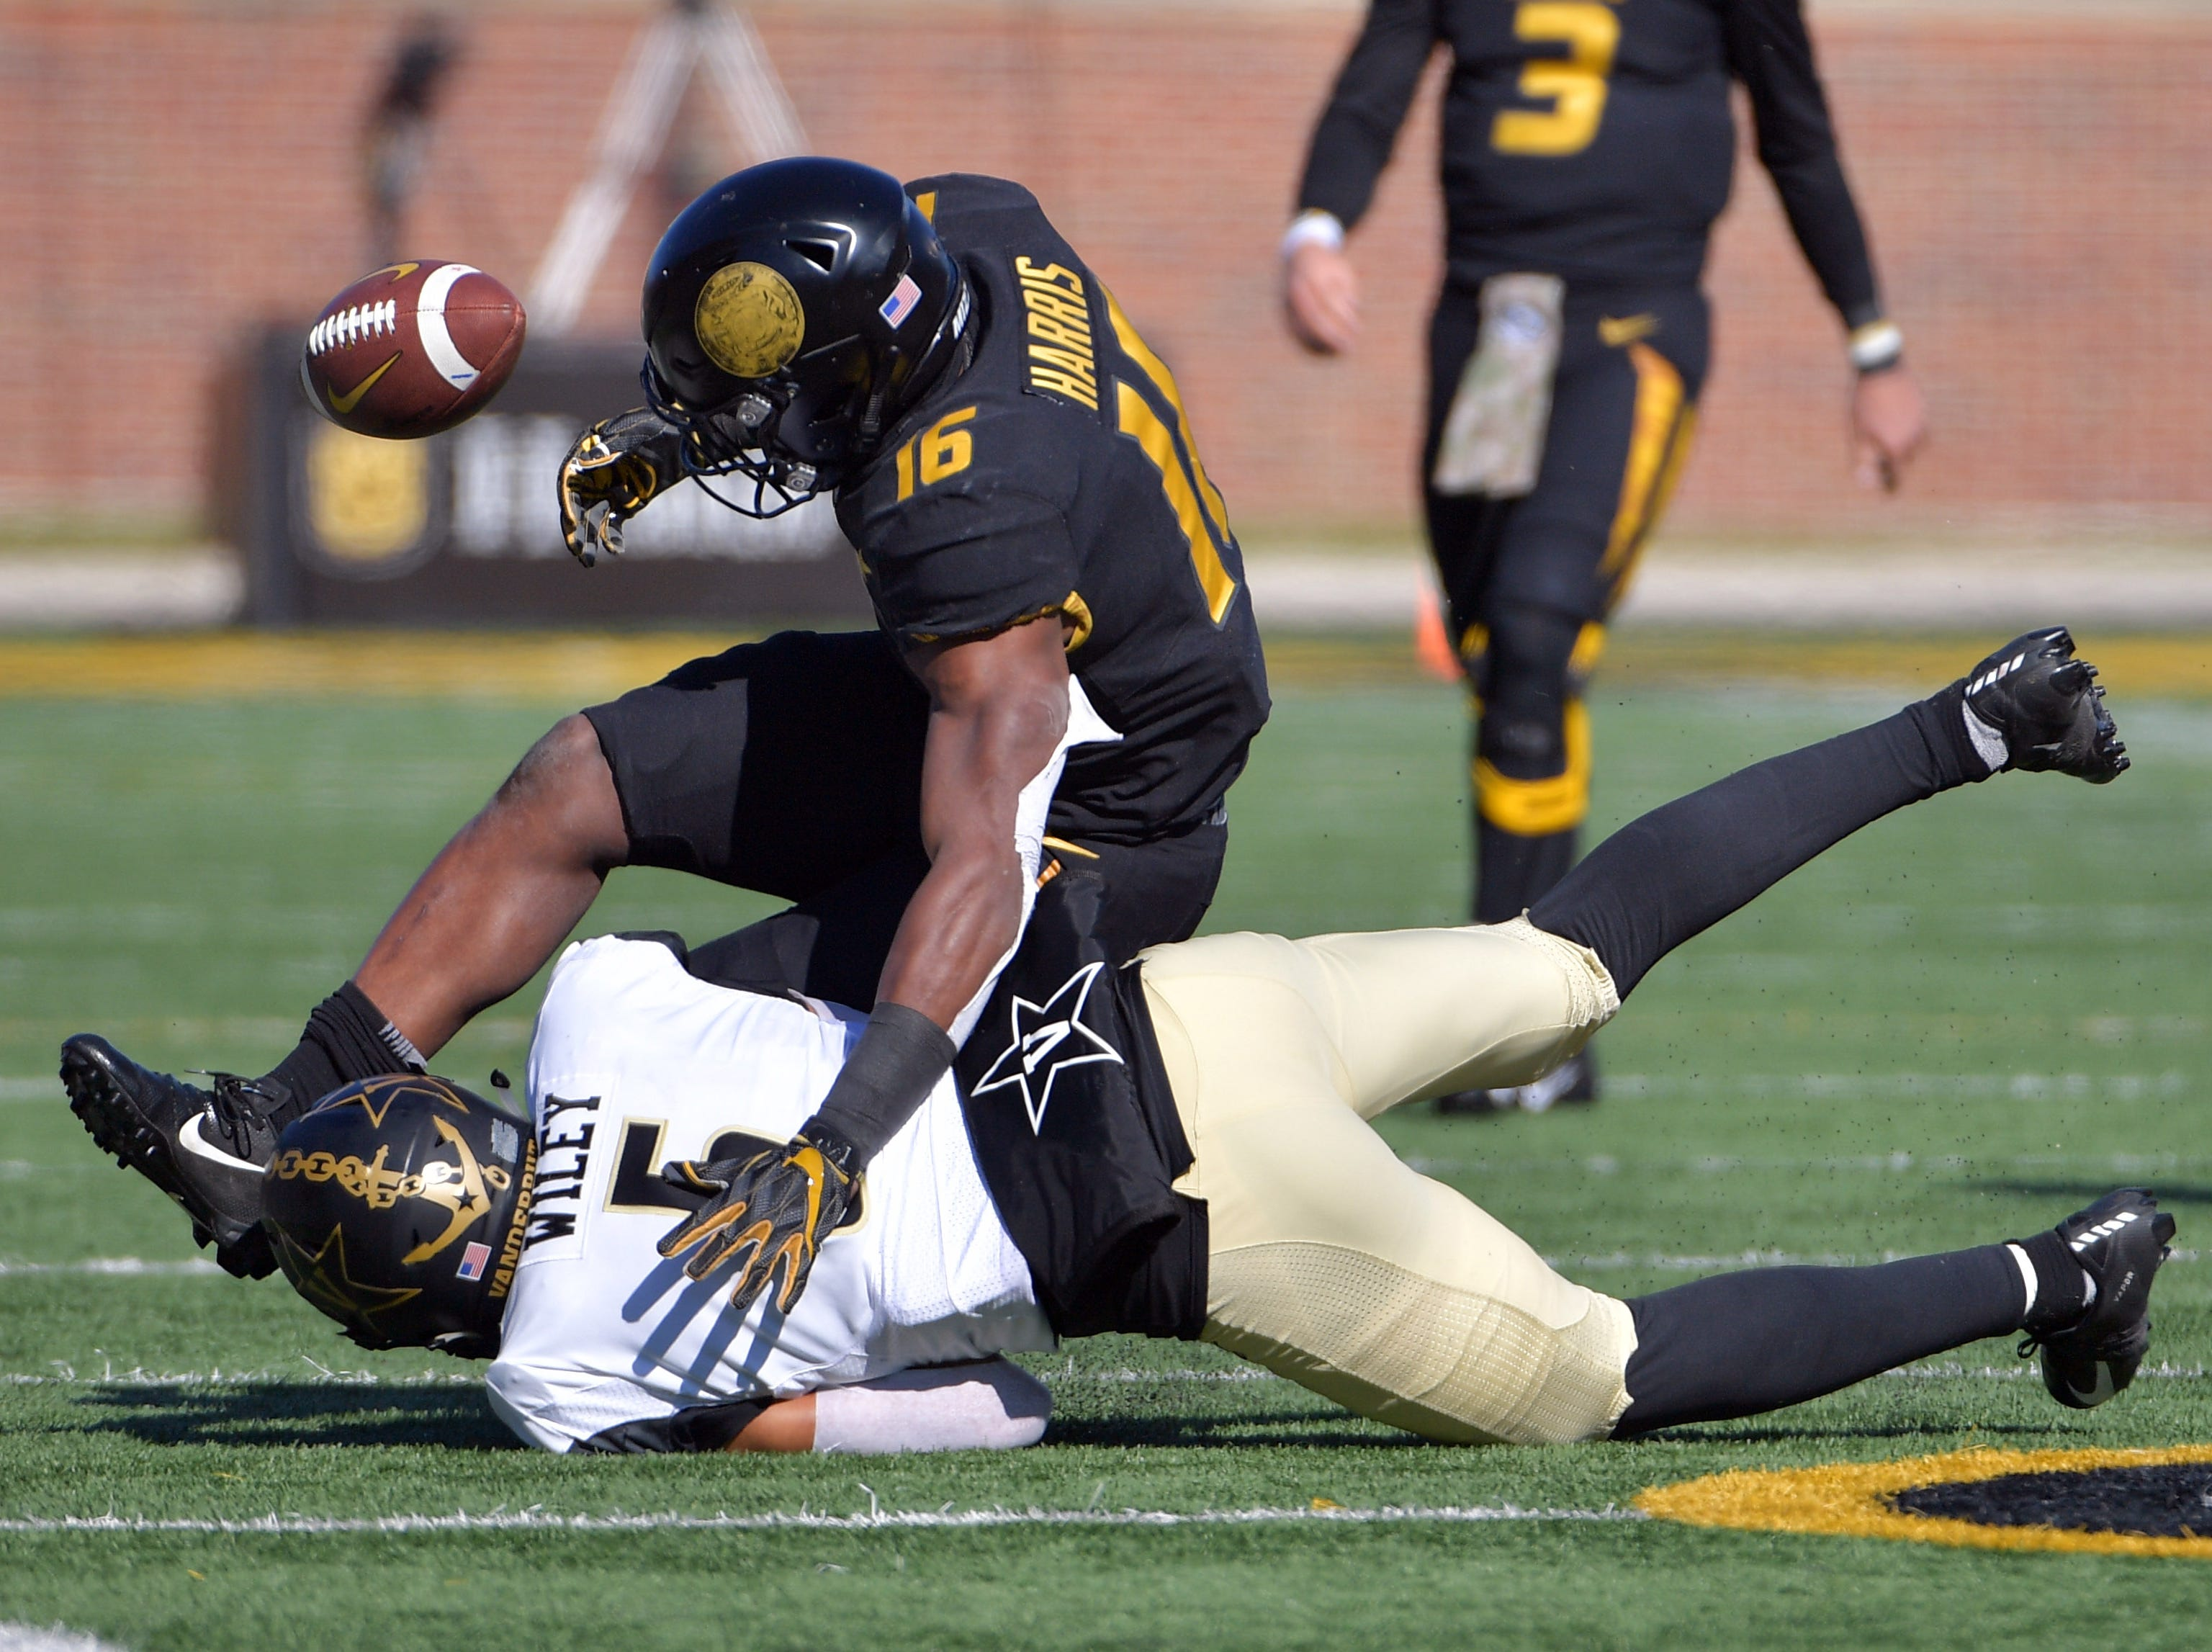 Missouri Tigers running back Damarea Crockett (16) fumbles the ball as he is tackled by Vanderbilt Commodores safety LaDarius Wiley (5) during the first half at Memorial Stadium/Faurot Field.